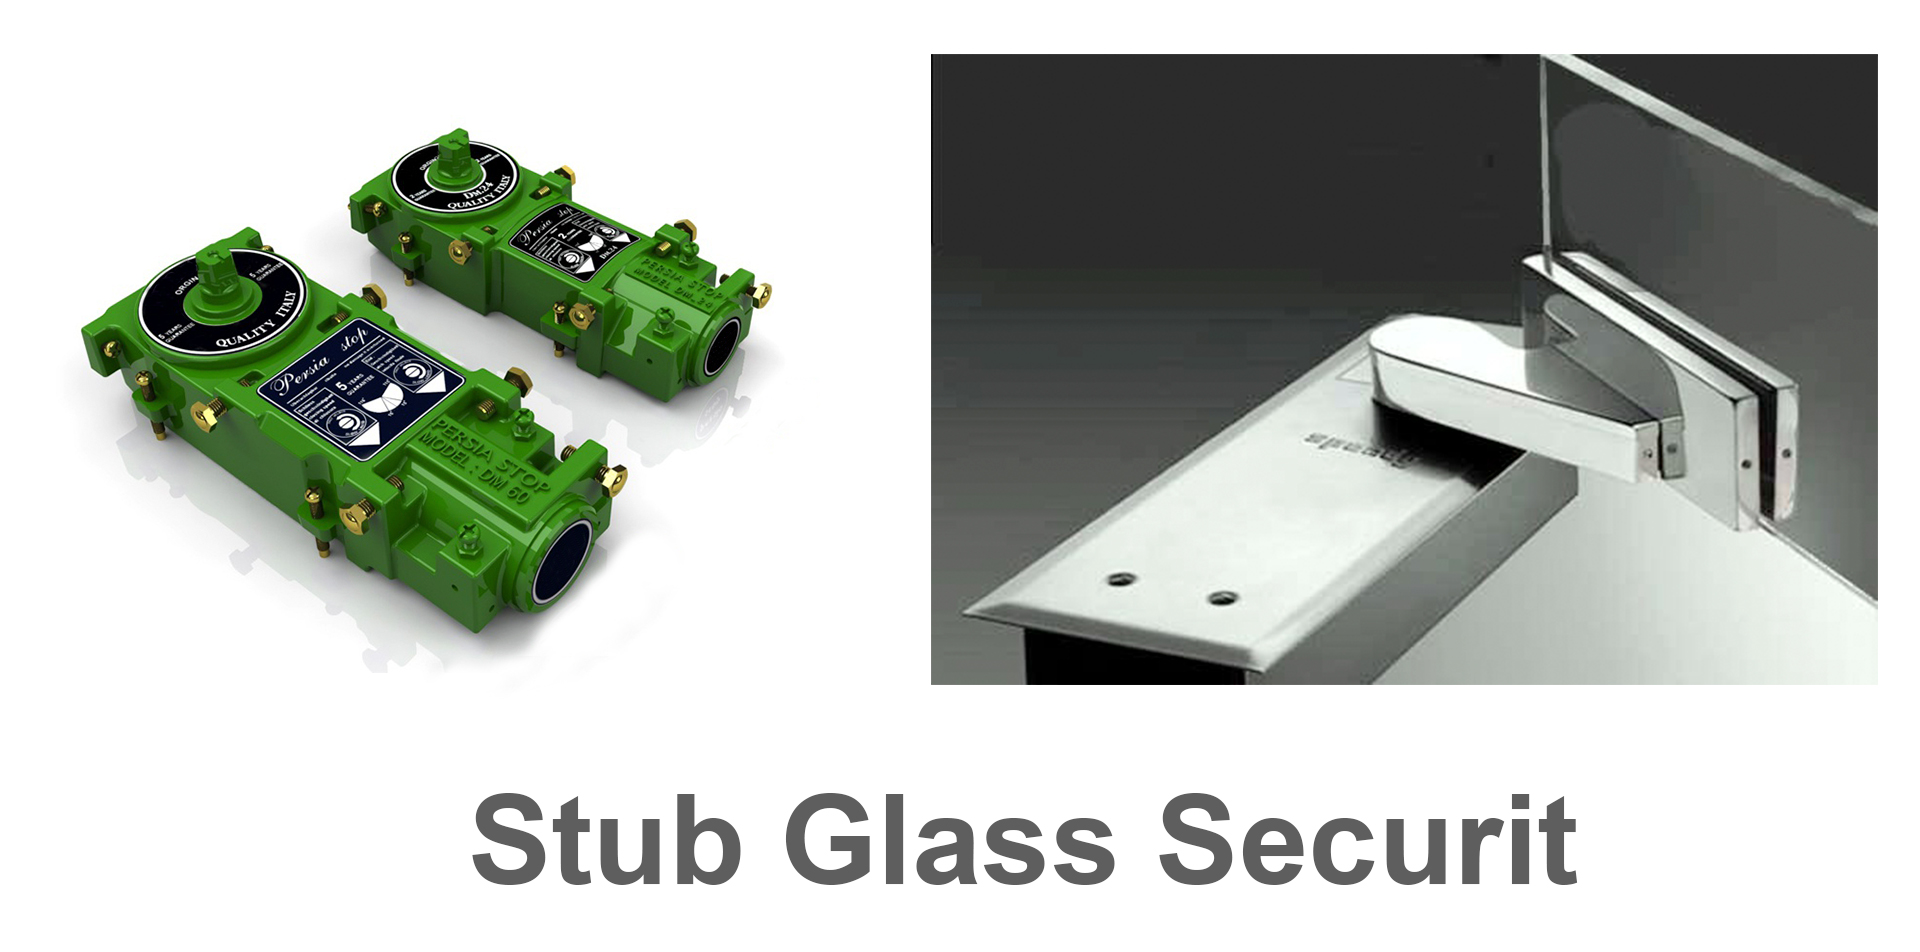 Stub-Glass-Securit